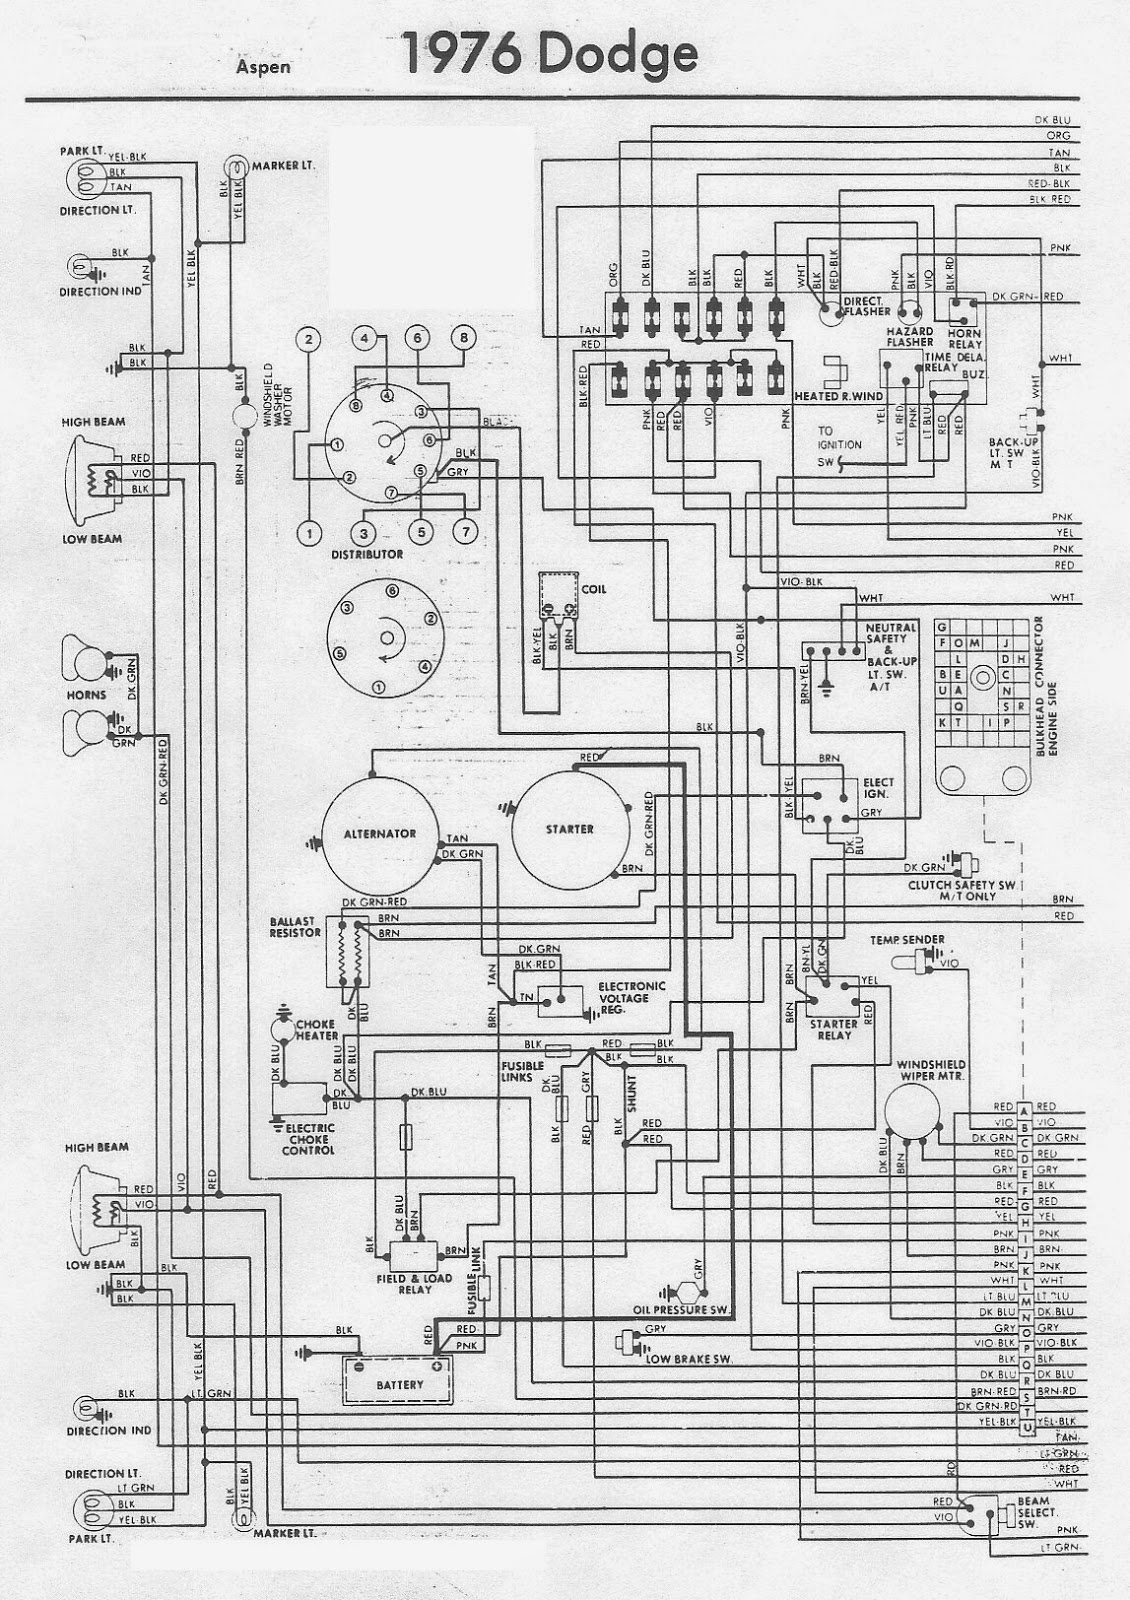 Dodge Electronic Ignition Wiring Diagram Downlights The 1976 Aspen Electrical System